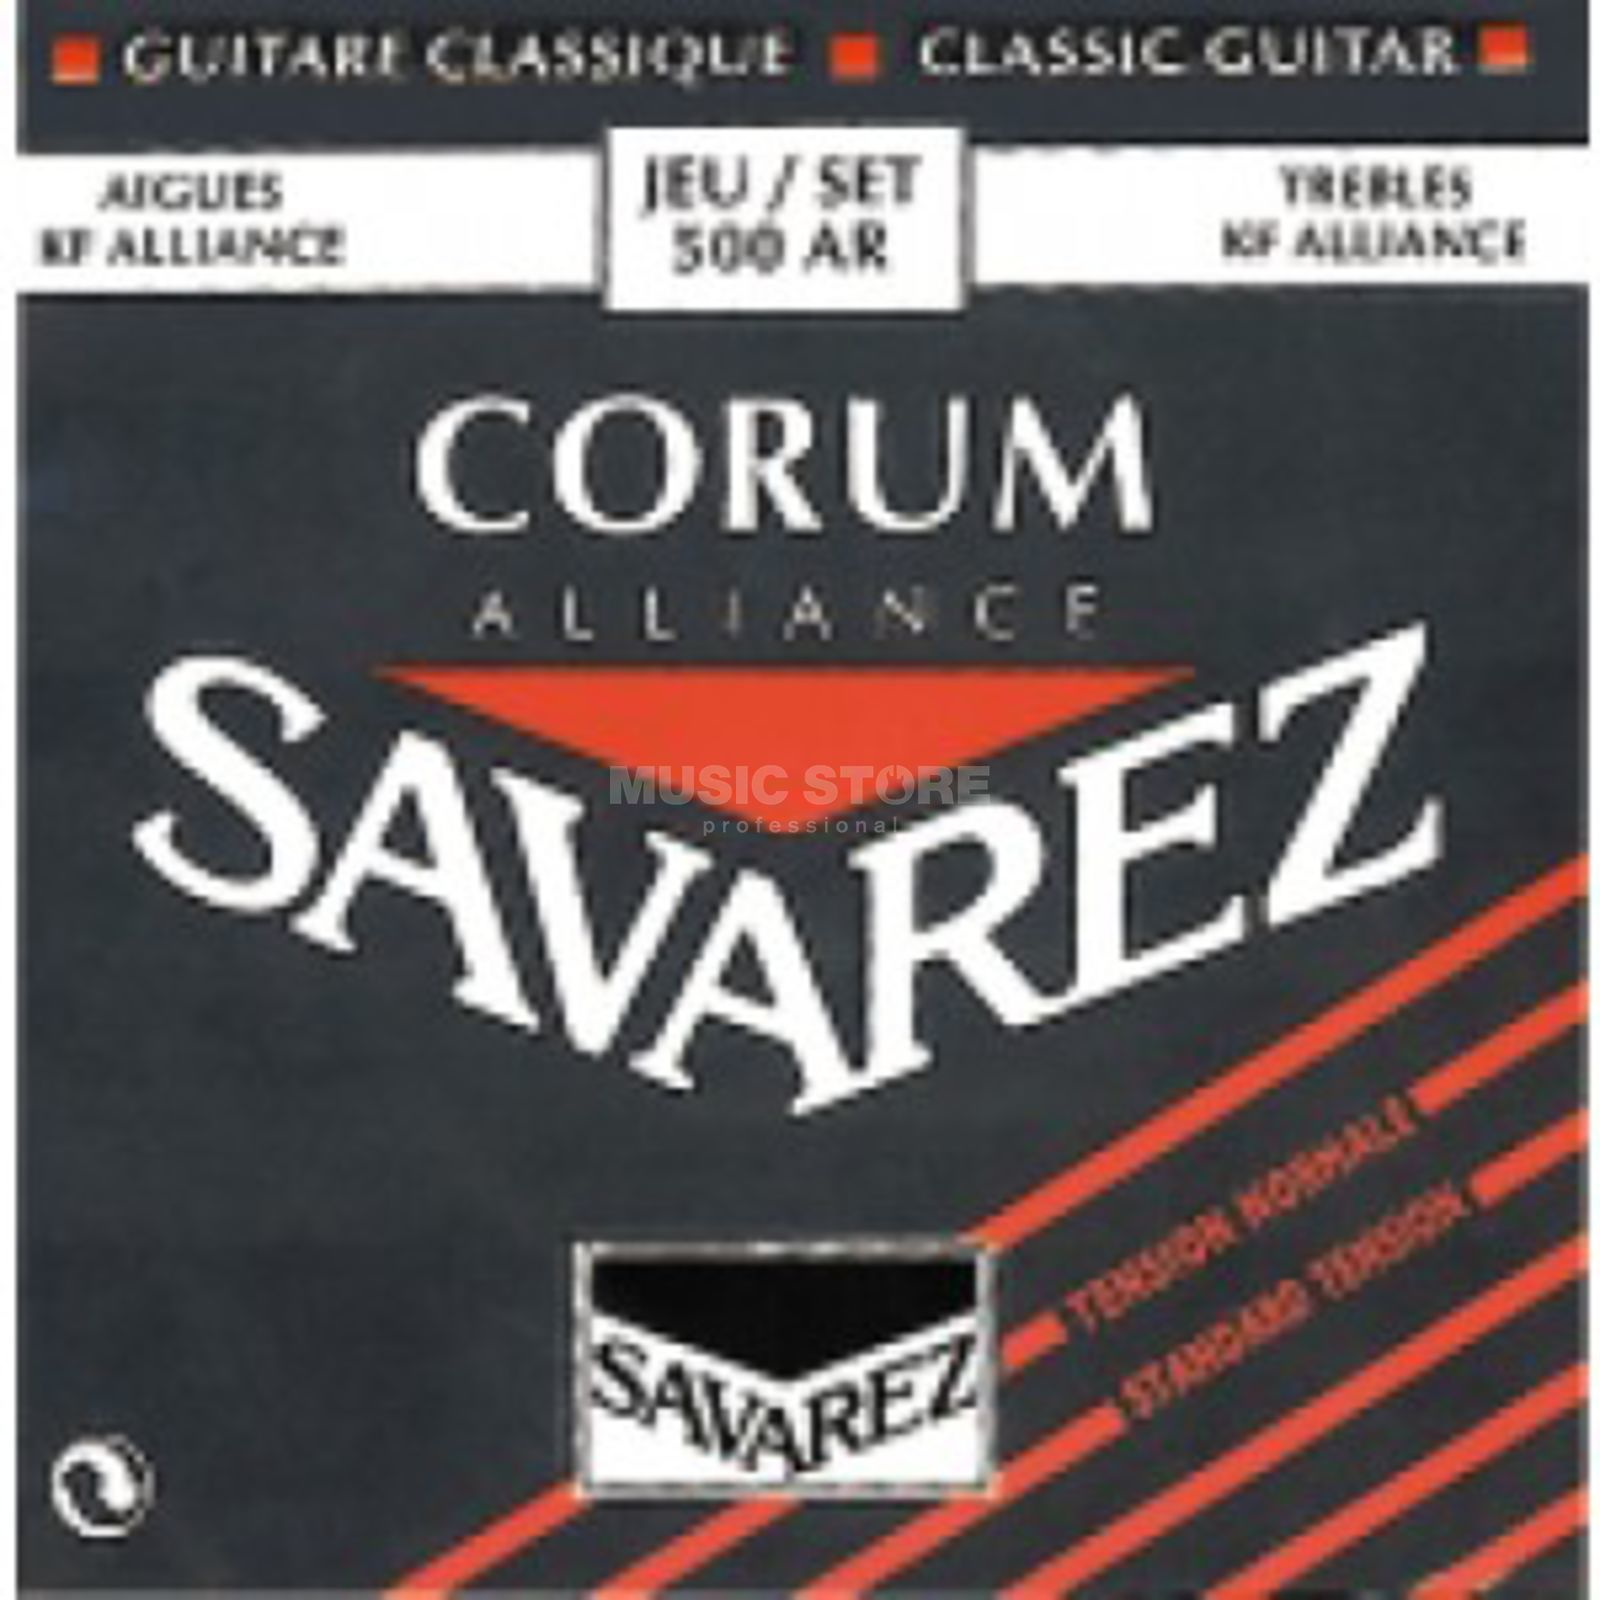 Savarez K-Git. Saiten 500AR Corum Carbon, Normal Tension Produktbild